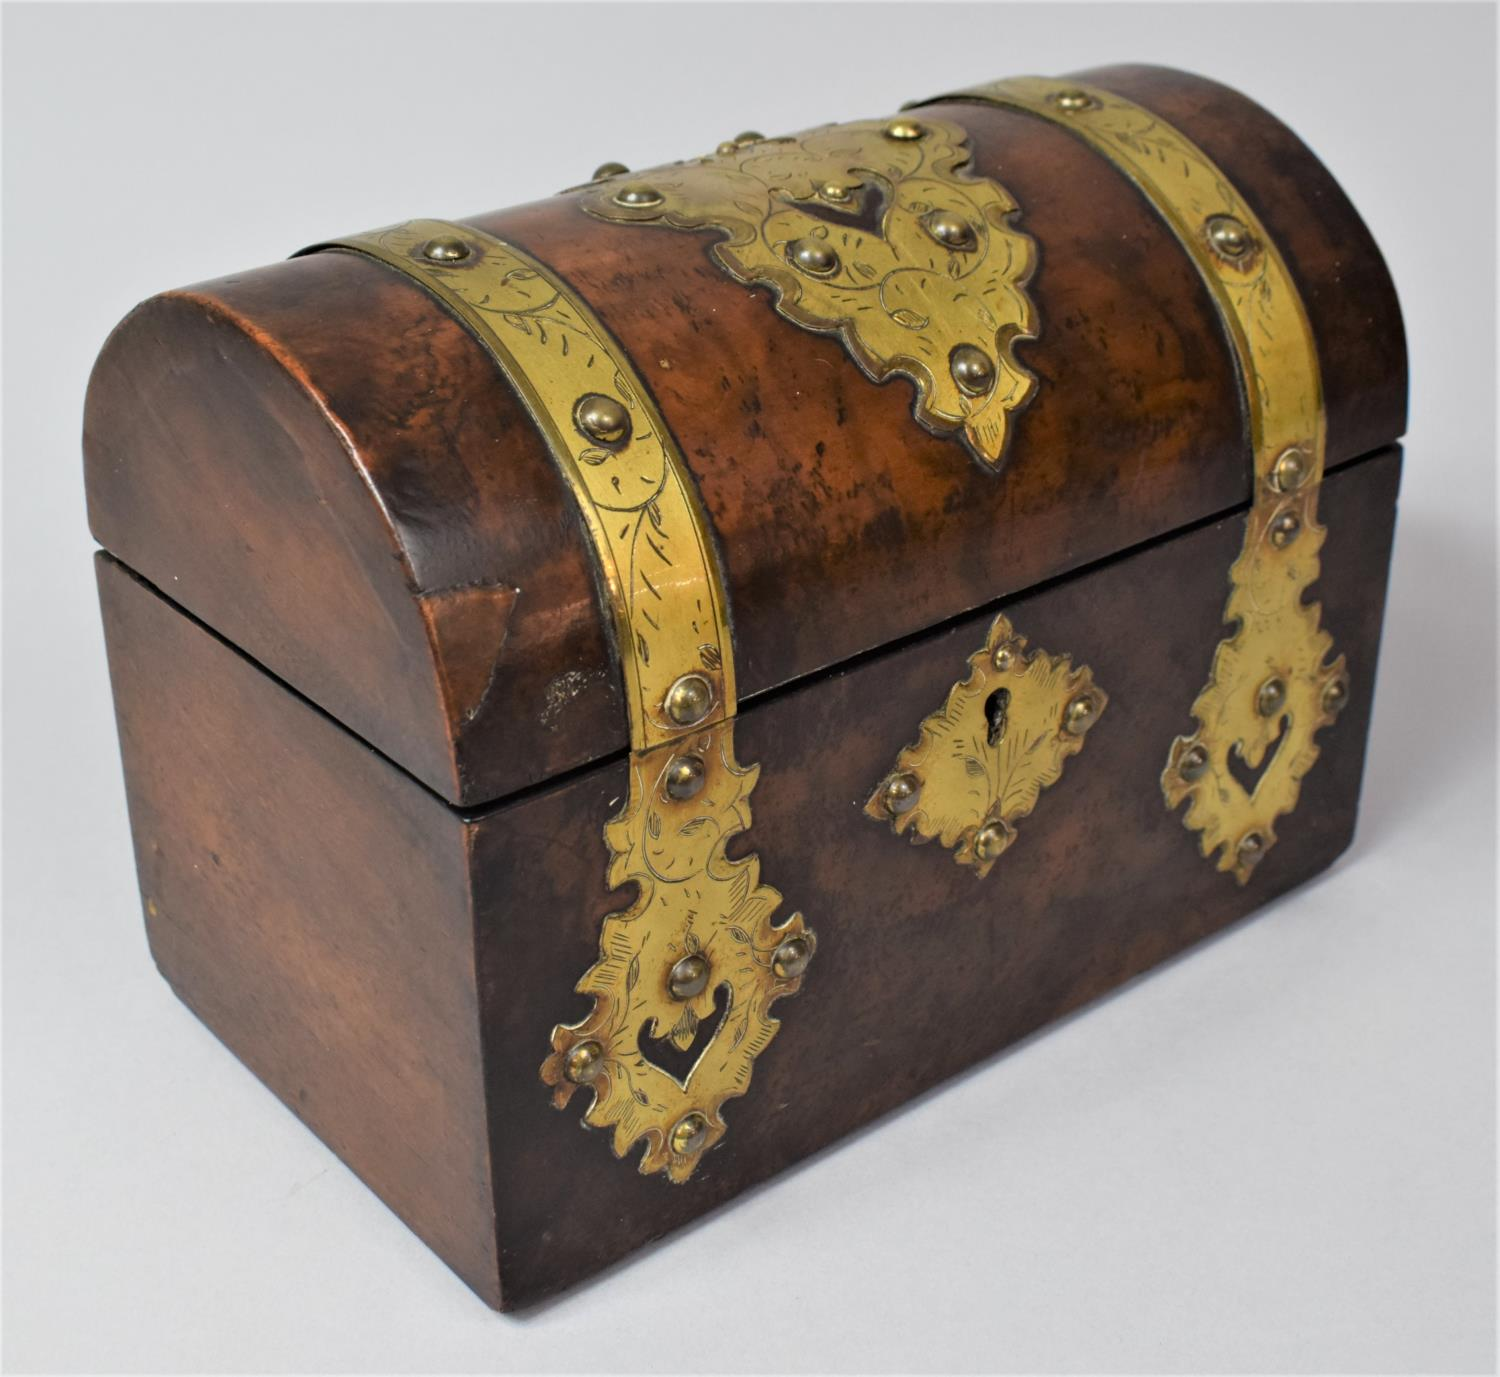 A Victorian Brass Mounted Burr Walnut, Dome Topped Casket with Hinged Lid, 20cm Wide - Image 2 of 5